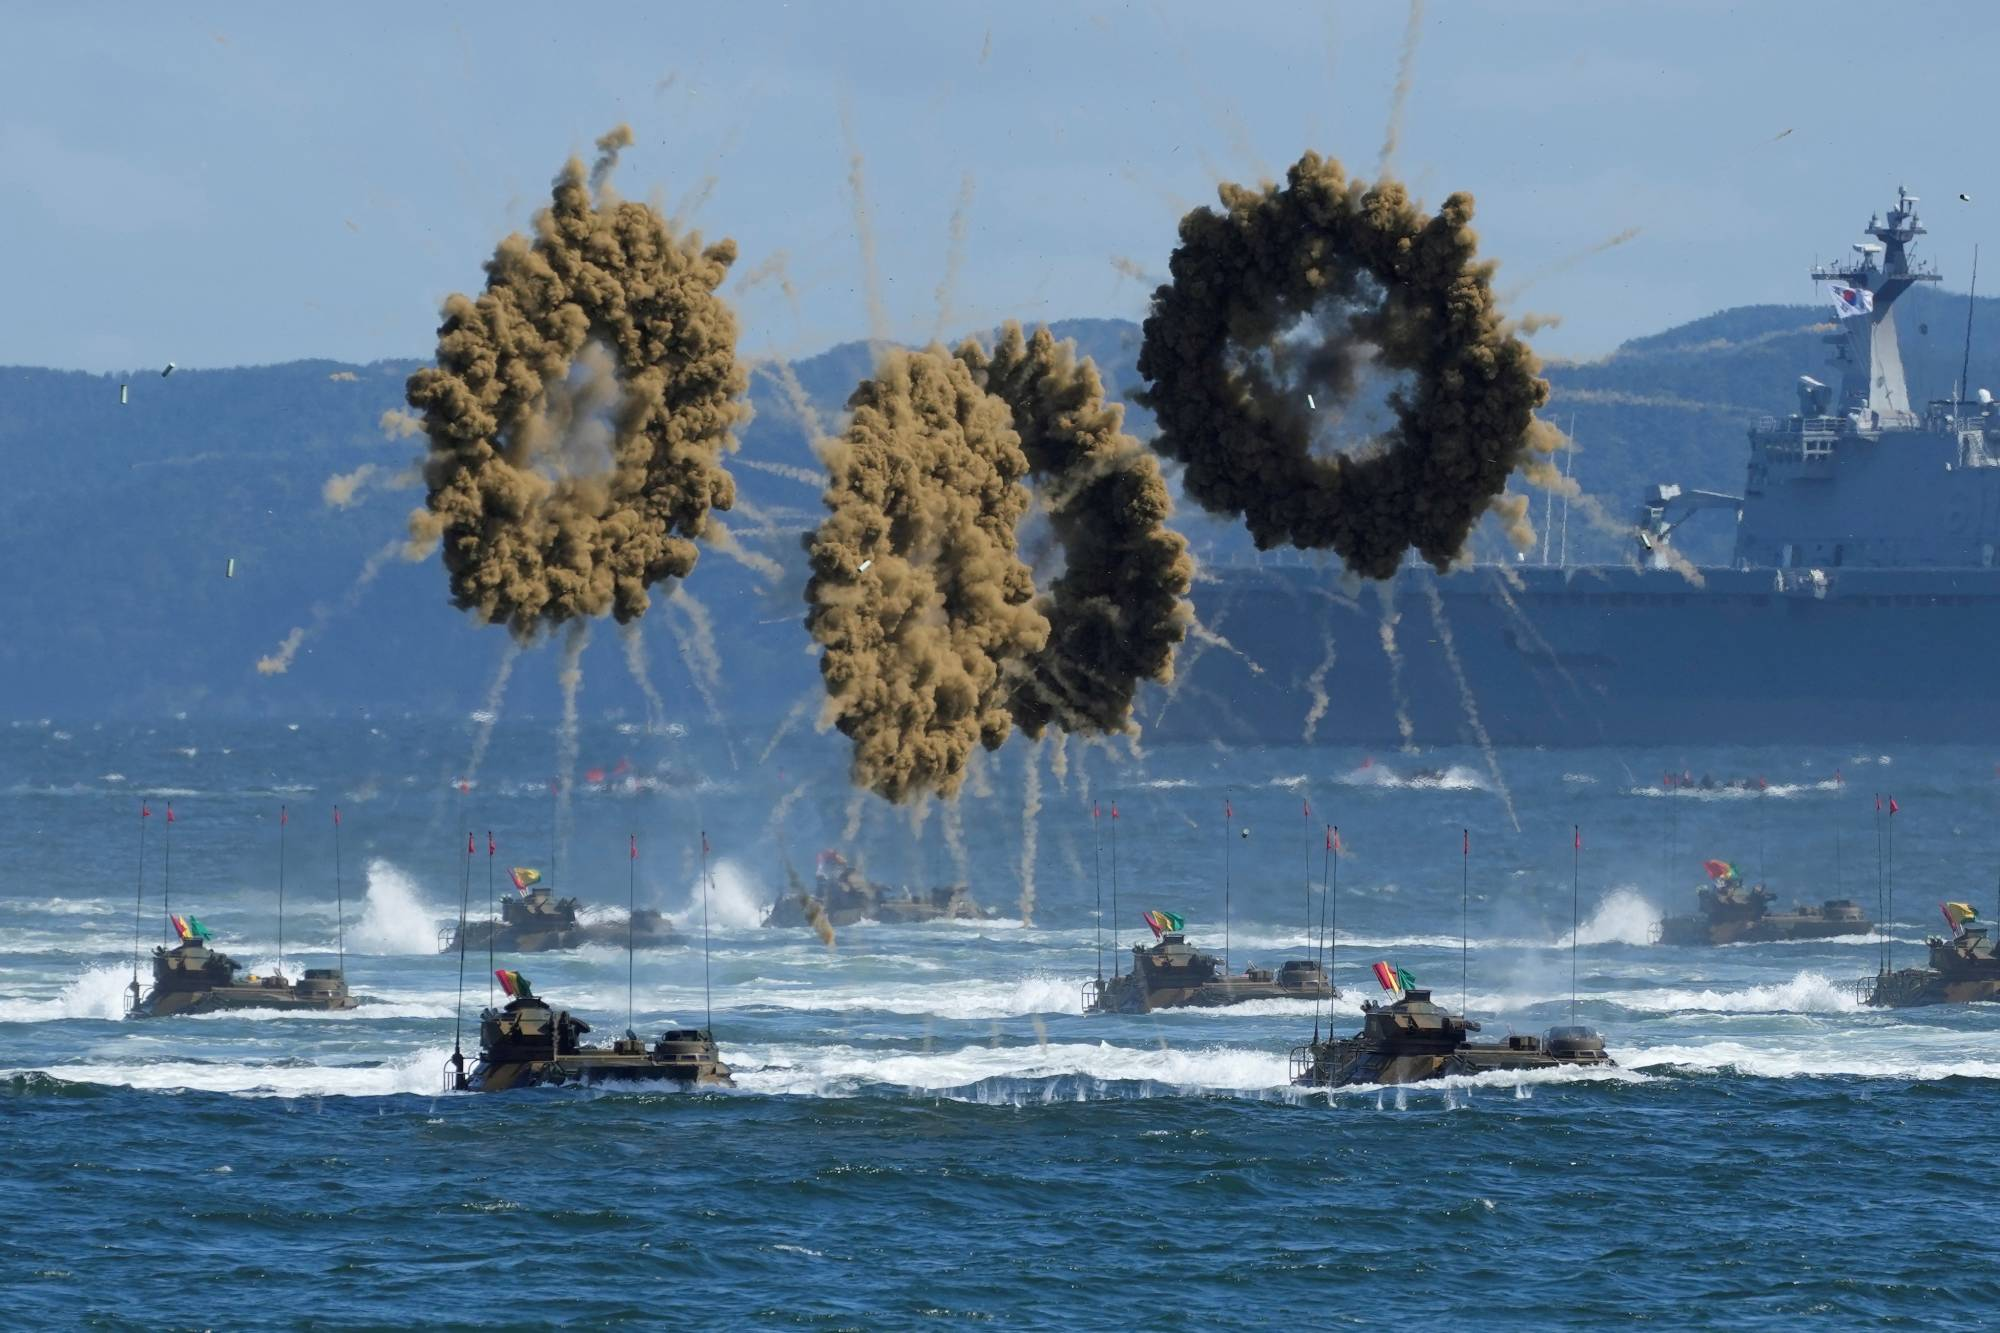 South Korean amphibious assault vehicles sail to shore amid a smokescreen during a media event on Sept. 31, a day ahead of the 73rd anniversary of the country's Armed Forces Day, in Pohang, South Korea.   POOL / VIA REUTERS